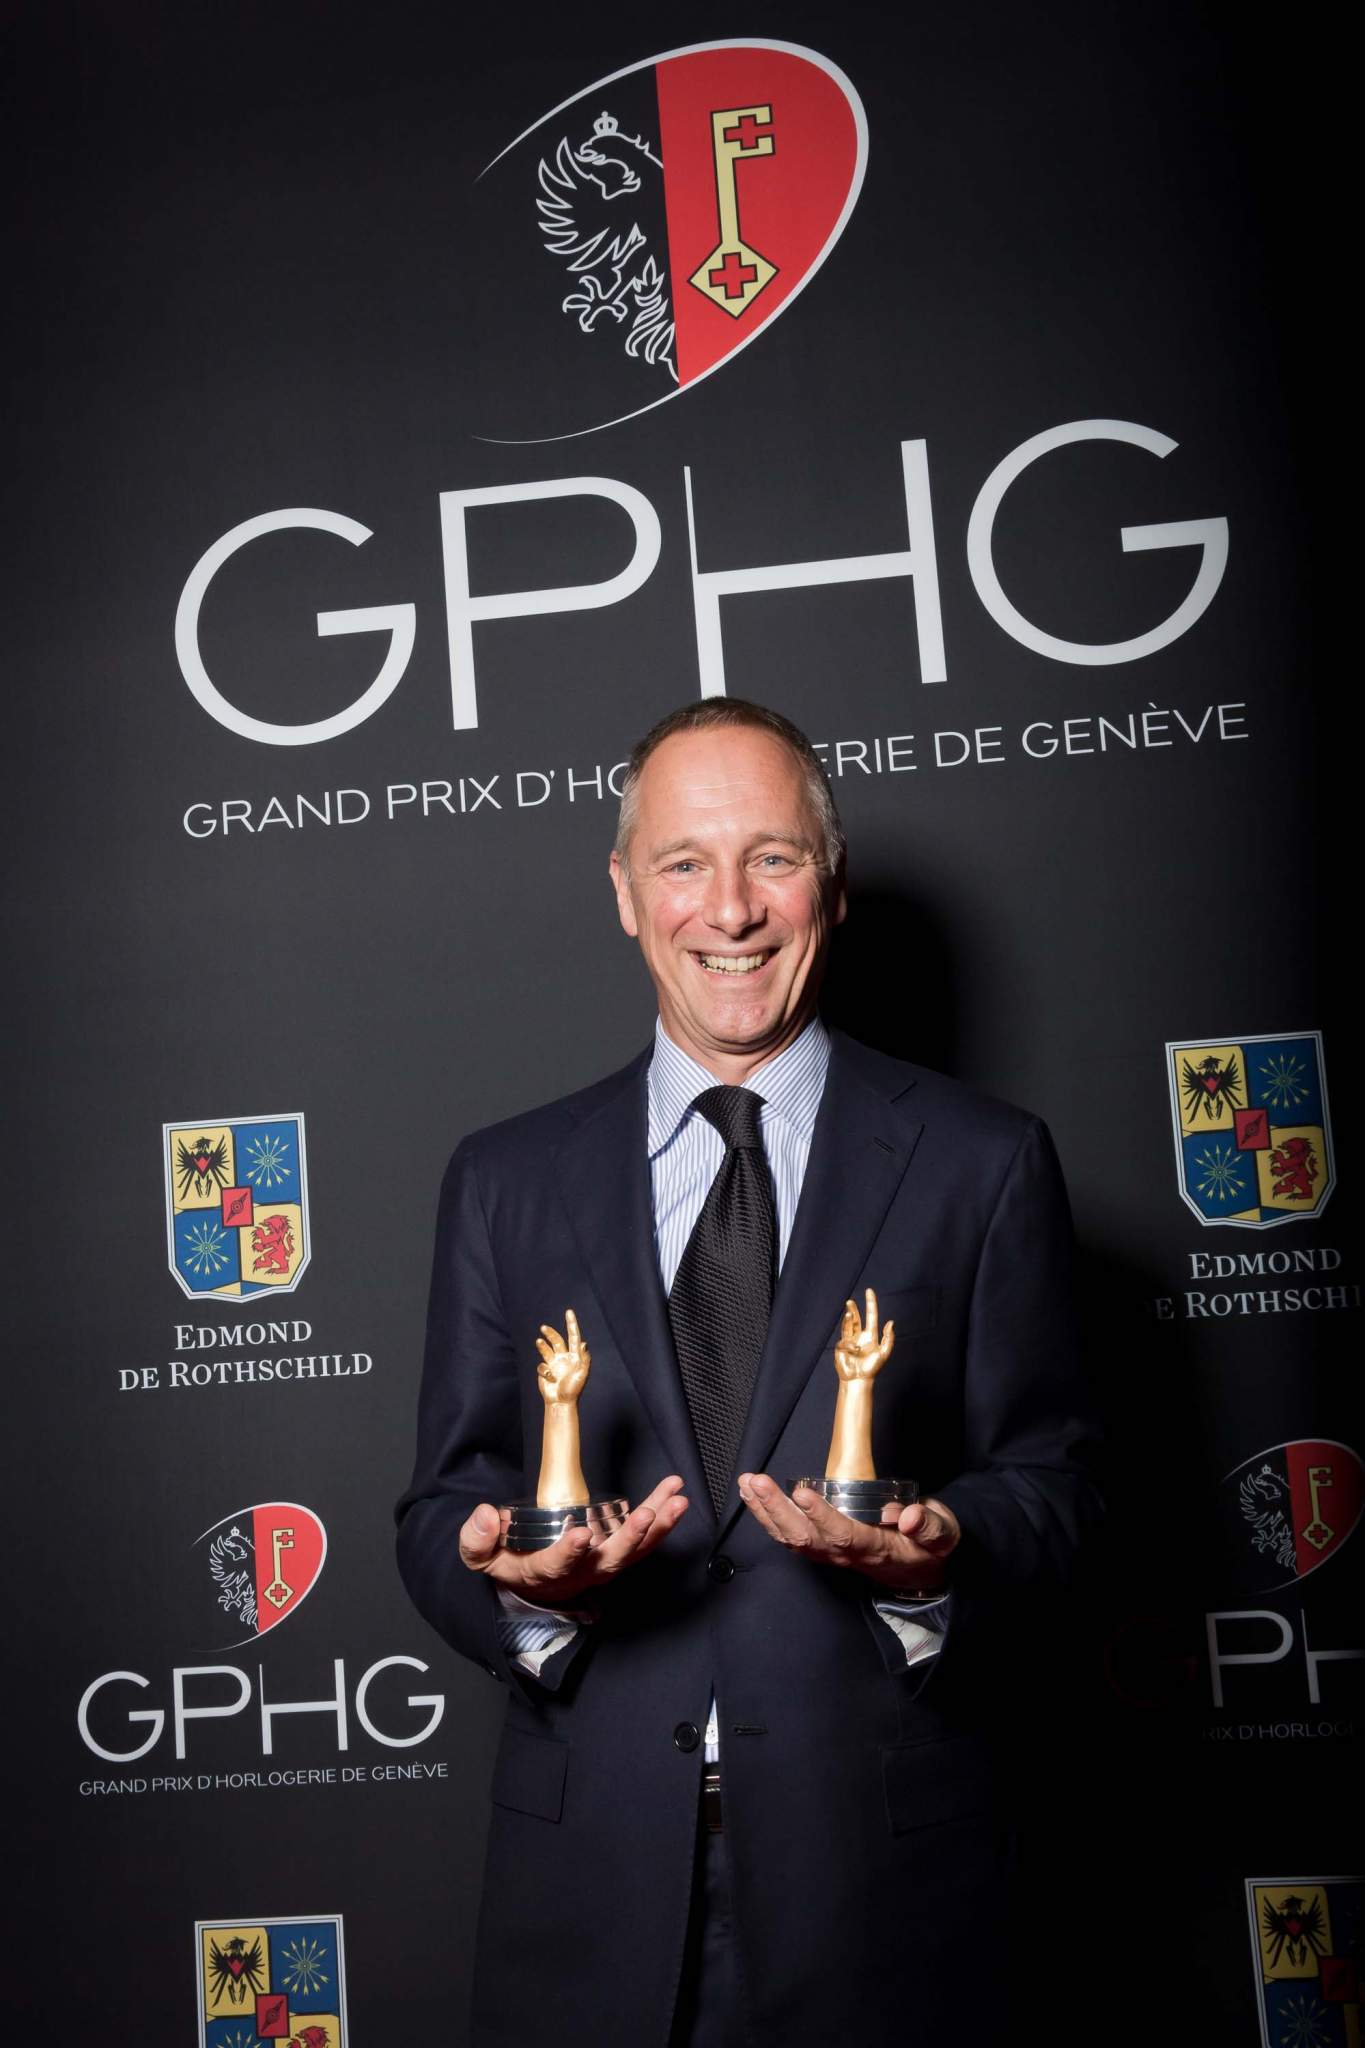 Speech of Wilhelm Schmid, CEO of A. Lange & Söhne, winner oft he Grande Complication Prize 2013 and Public Prize 2013